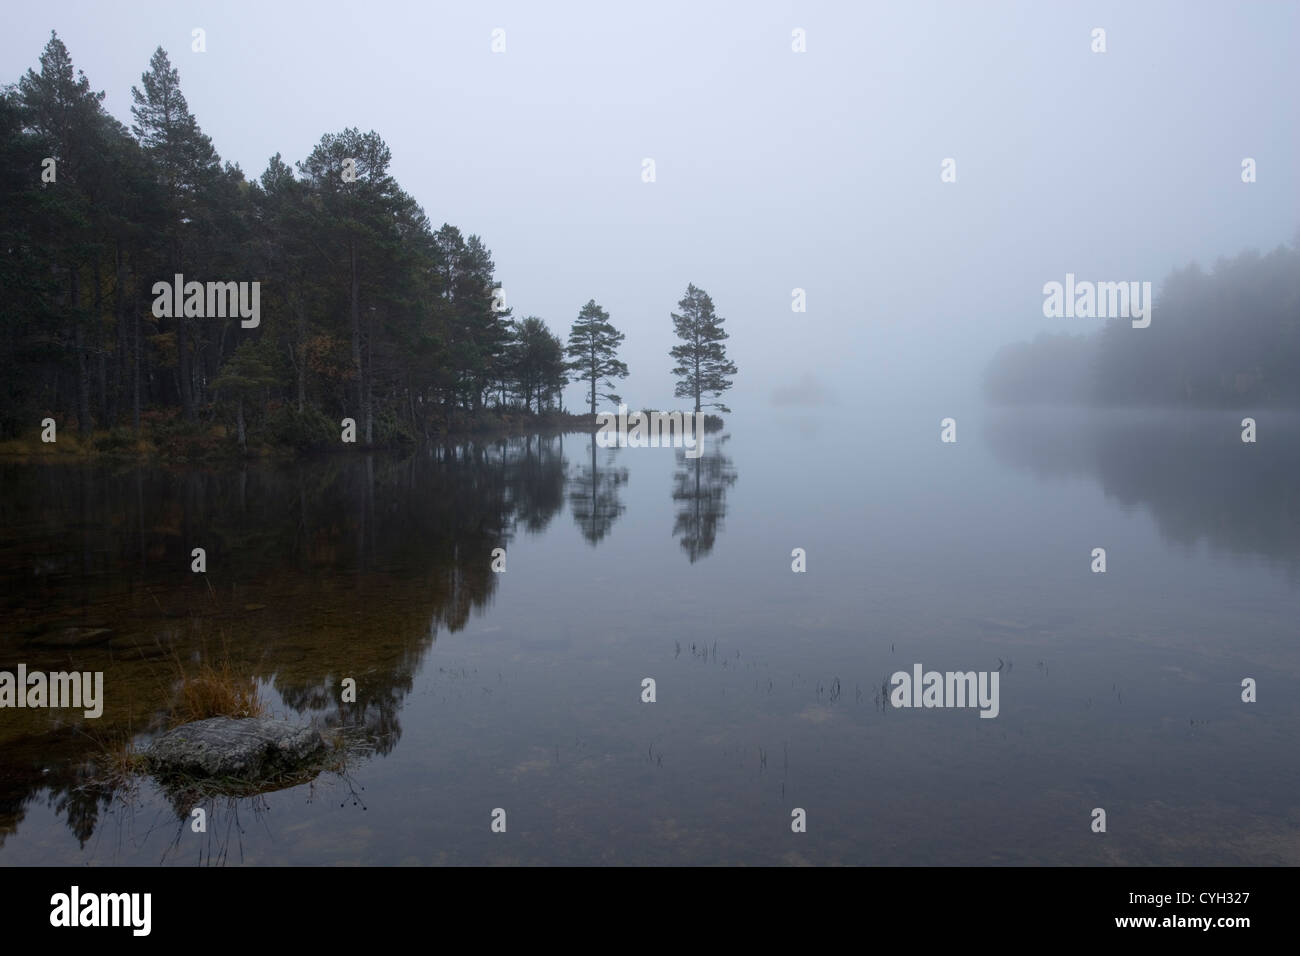 Misty morning at Loch Eilein, Scotland, UK. - Stock Image